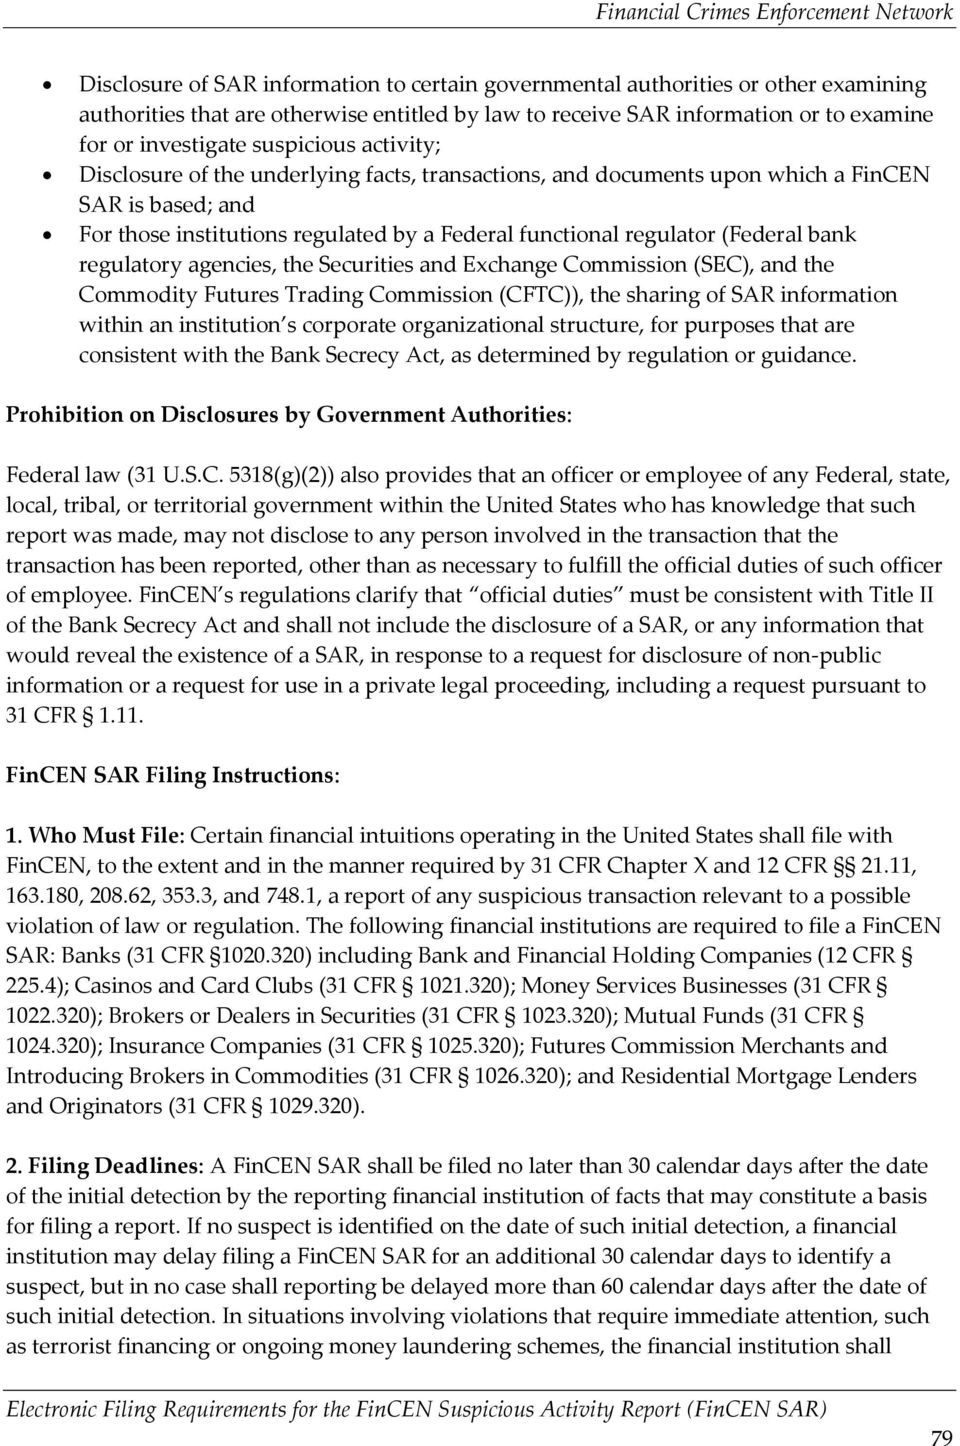 bank regulatory agencies, the Securities and Exchange Commission (SEC), and the Commodity Futures Trading Commission (CFTC)), the sharing of SAR information within an institution s corporate